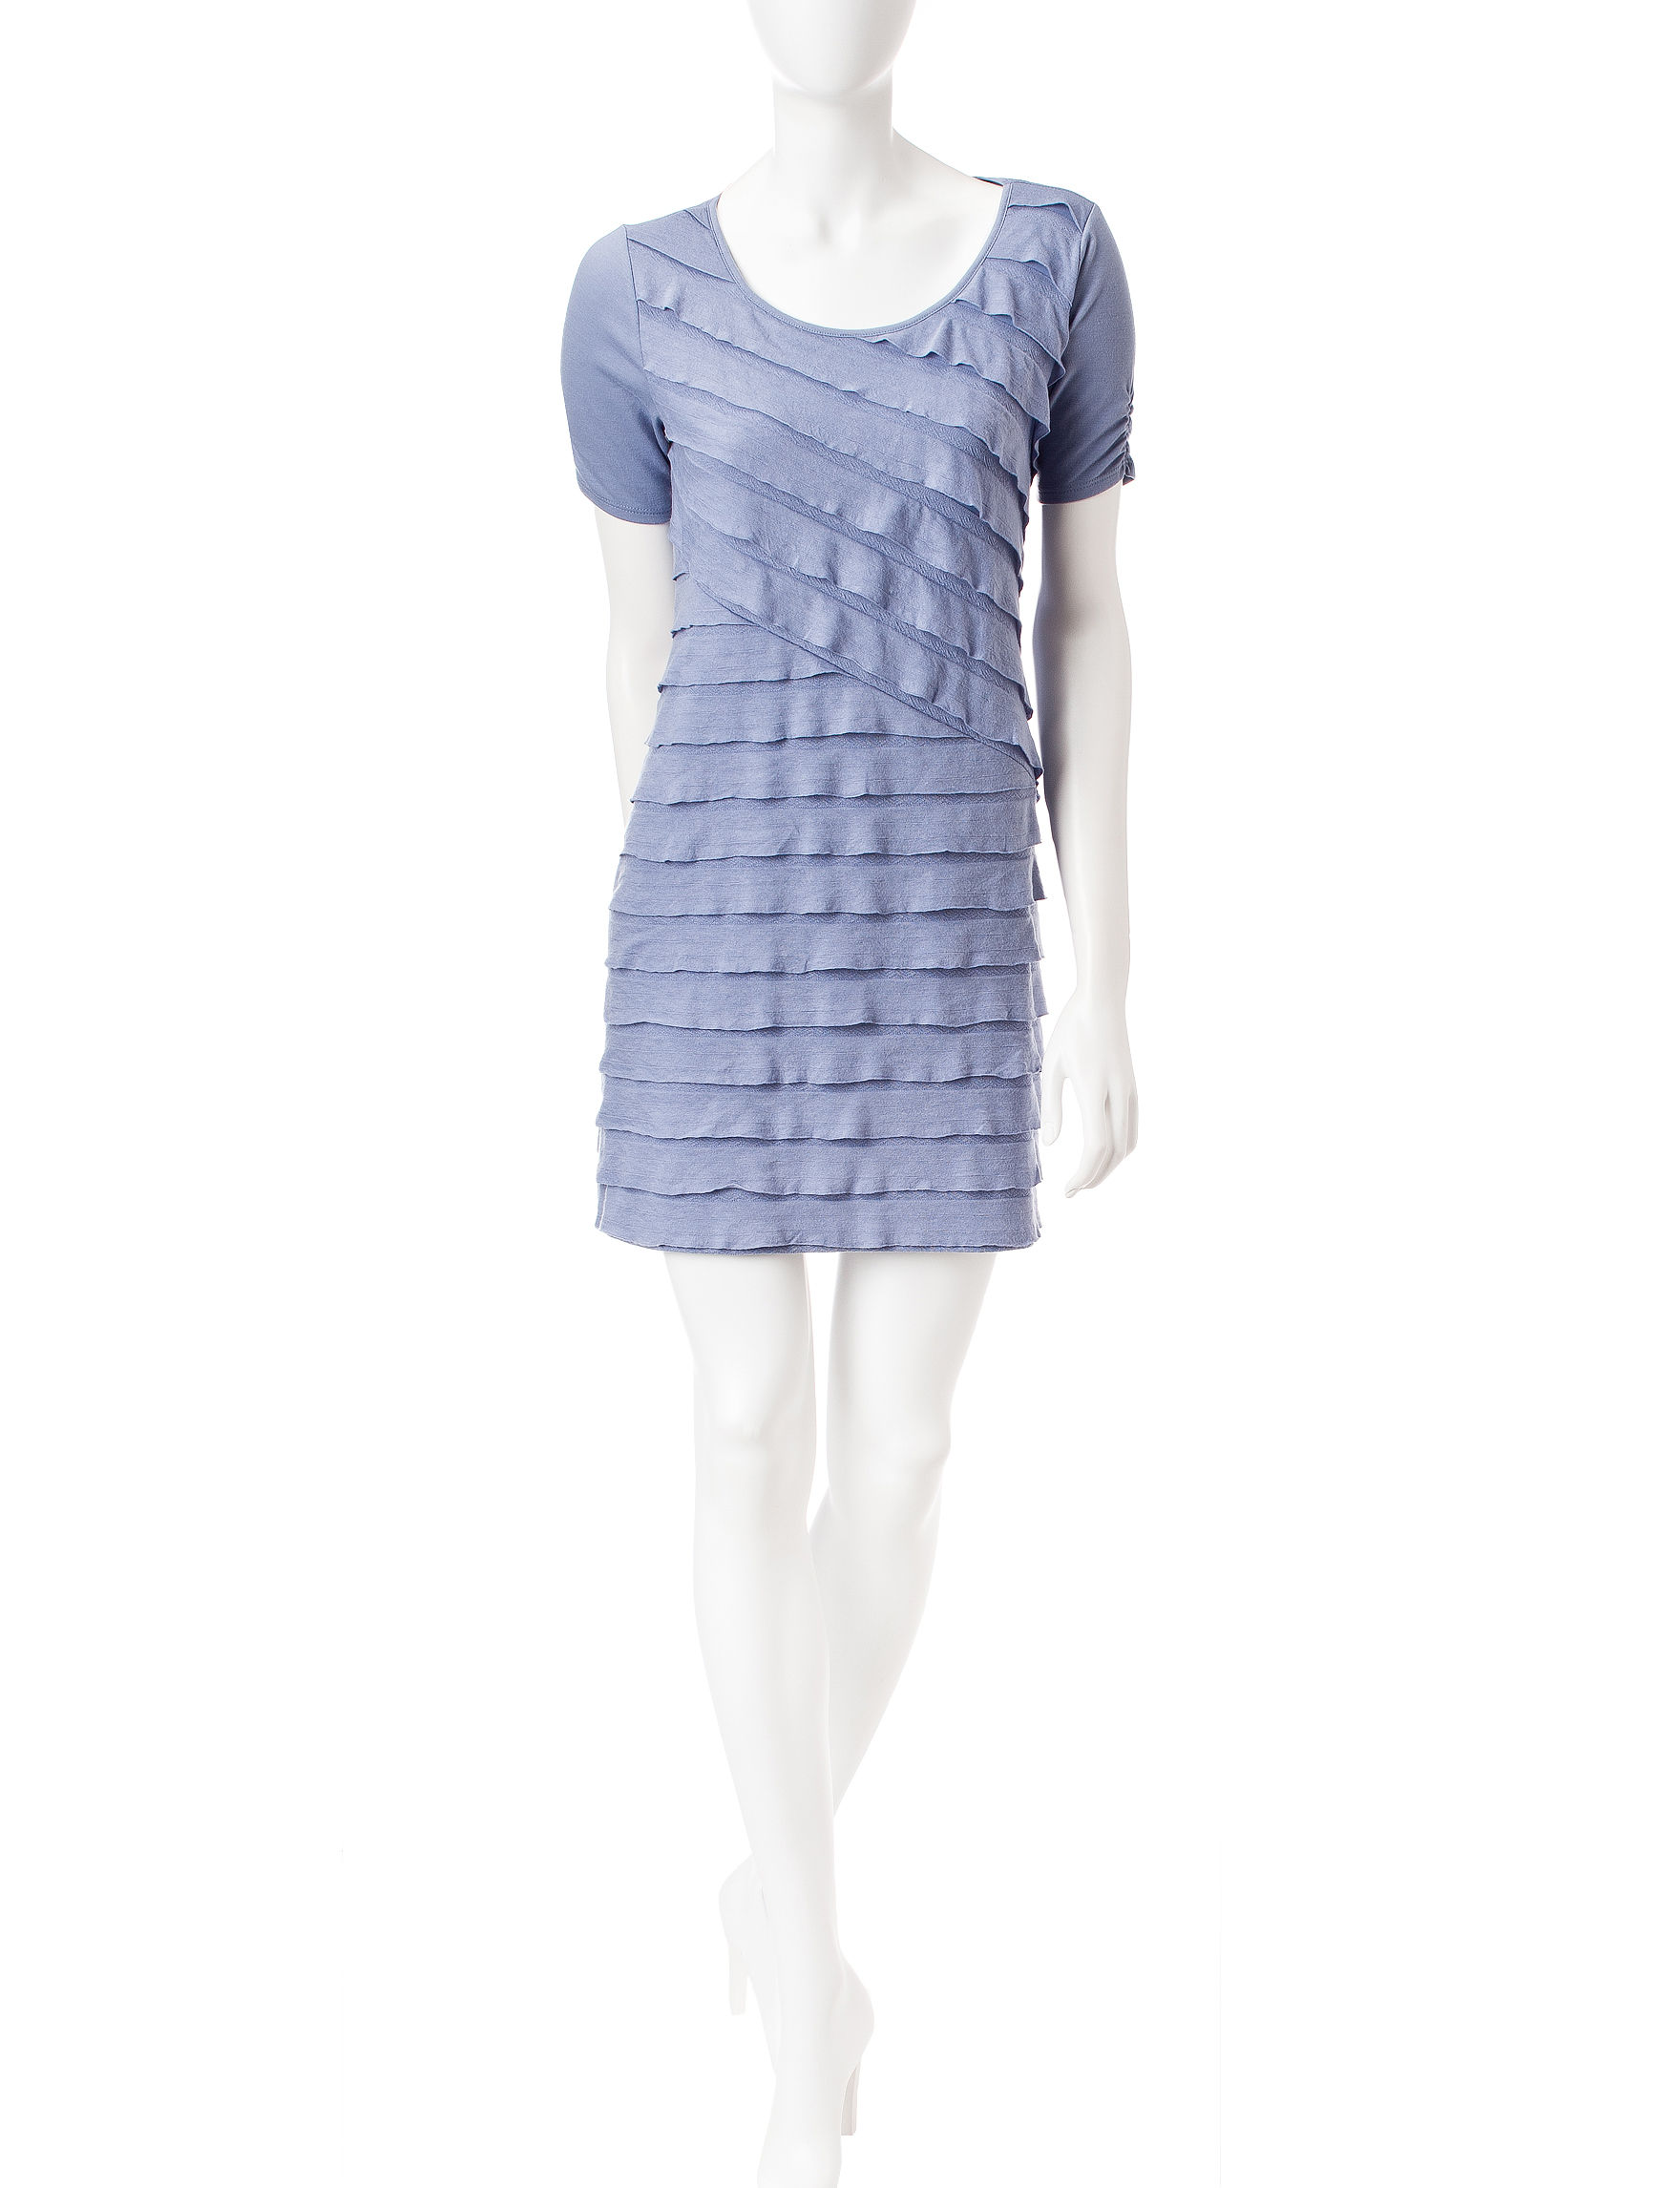 A. Byer Purple Everyday & Casual Shift Dresses